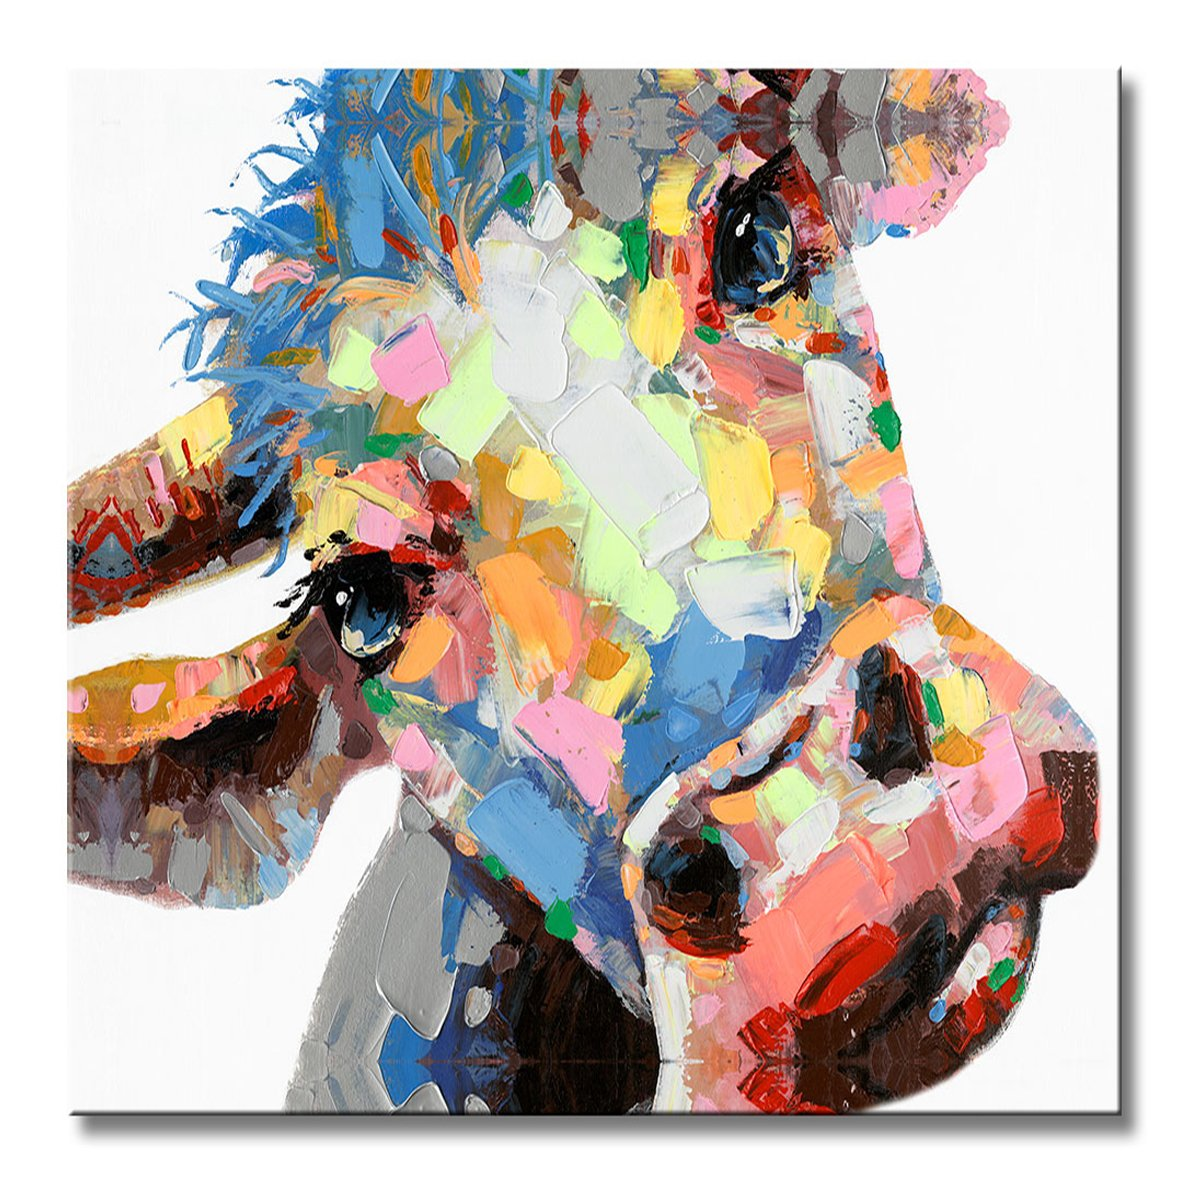 FLY SPRAY 1 Panel Framed 100% Hand Painted Oil Paintings Canvas Wall Art Colorful Cattle Cow Donkey's Head Modern Abstract Artwork Painting for Living Room Bedroom Office Home Decoration by FLY SPRAY